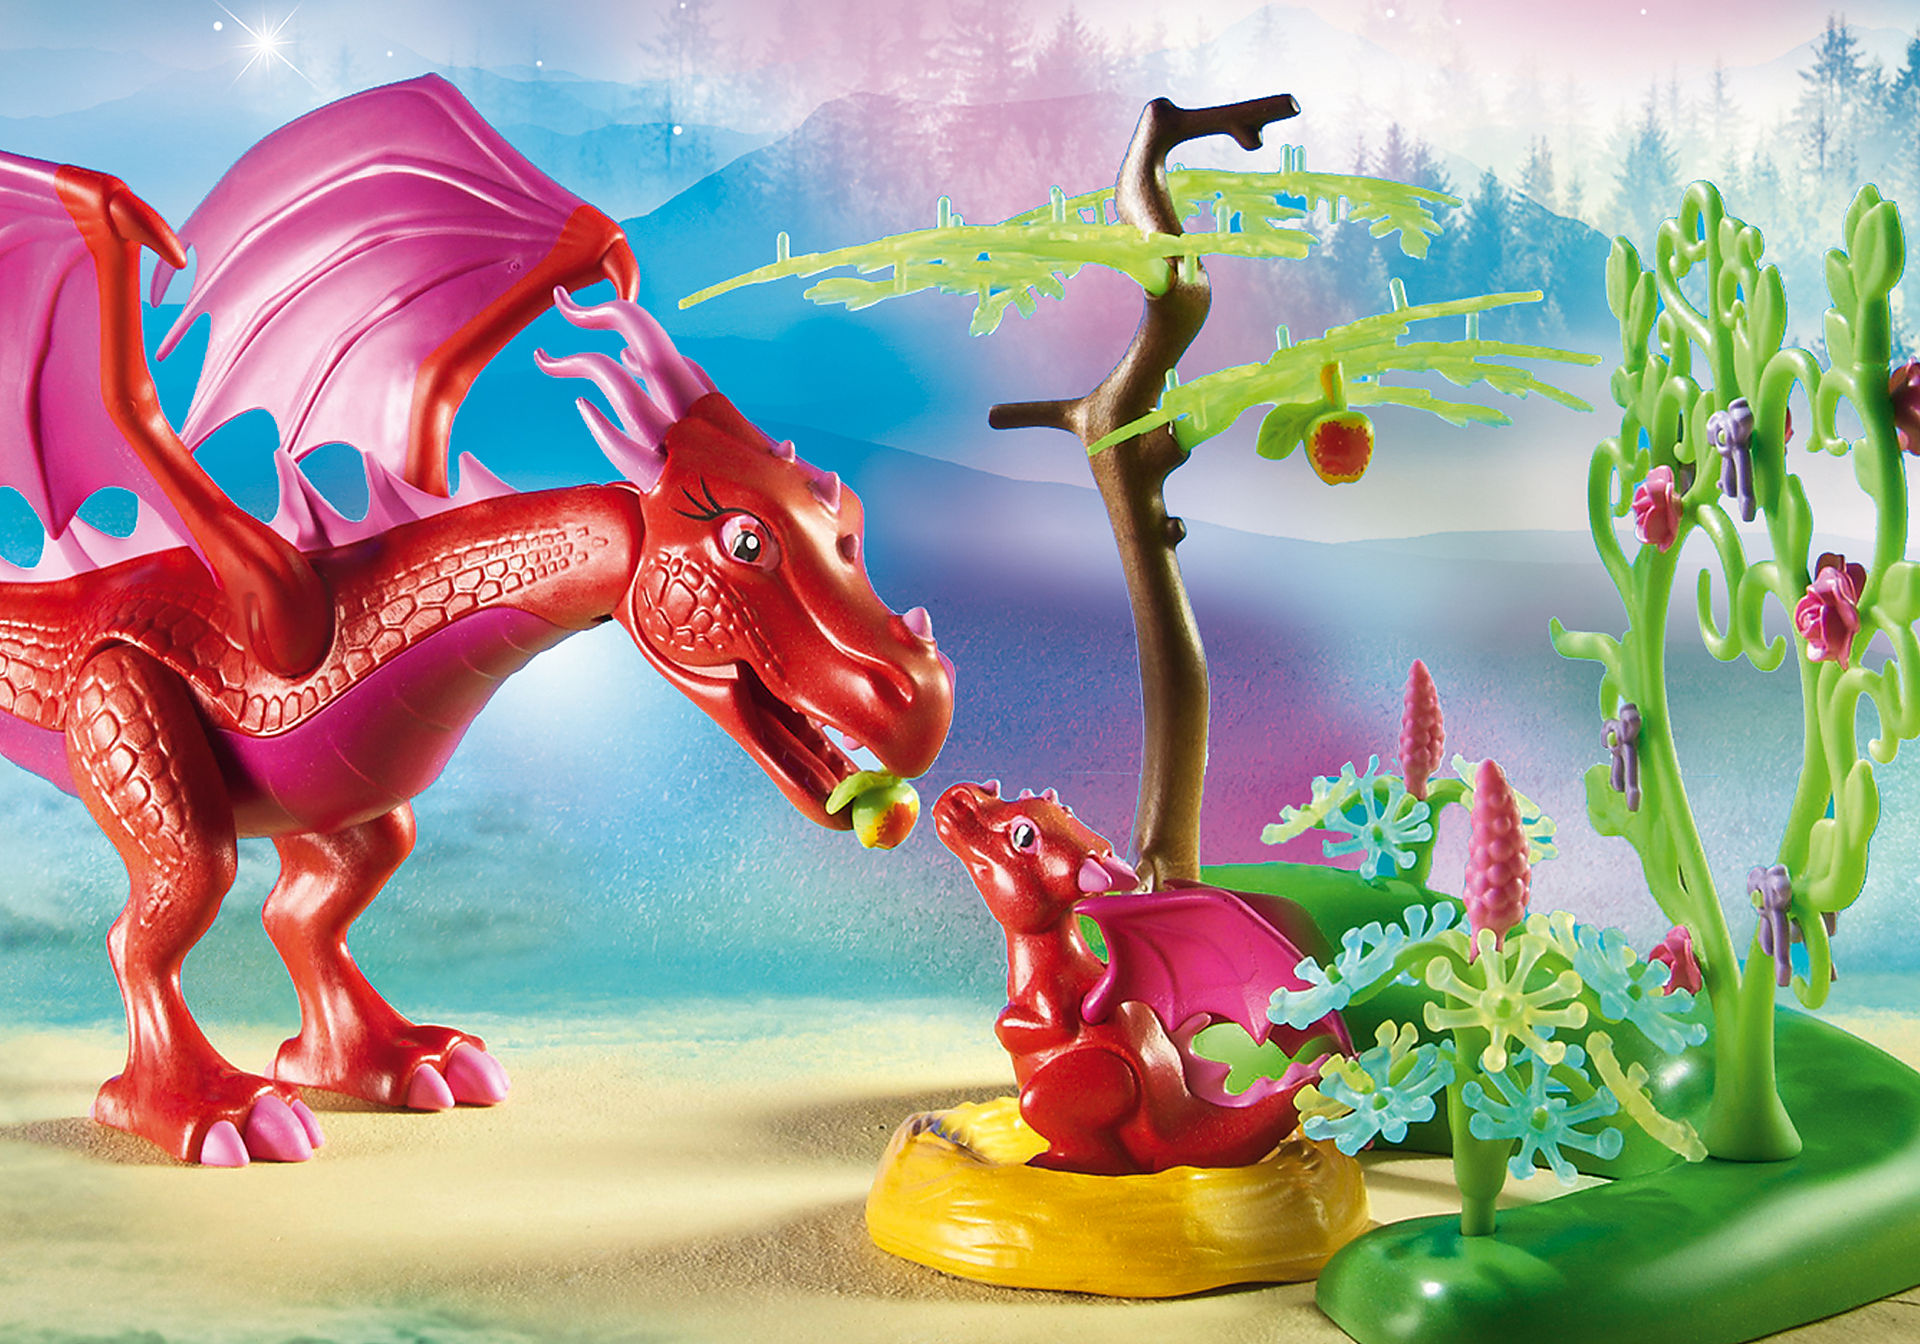 http://media.playmobil.com/i/playmobil/9134_product_extra2/Friendly Dragon with Baby